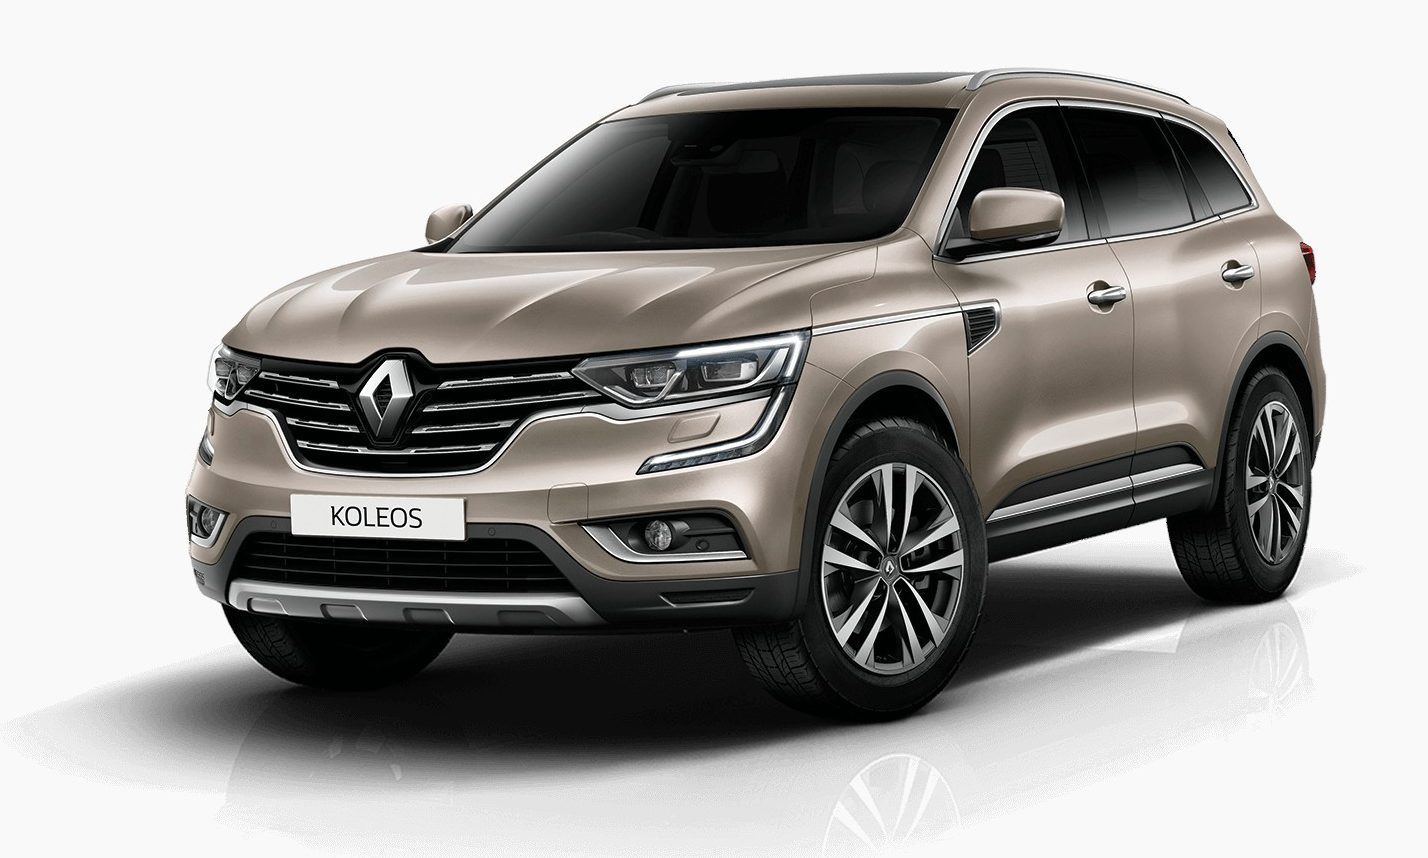 Audi Suv Models >> 2018 Renault Koleos PE Price in UAE, Specs & Review in ...